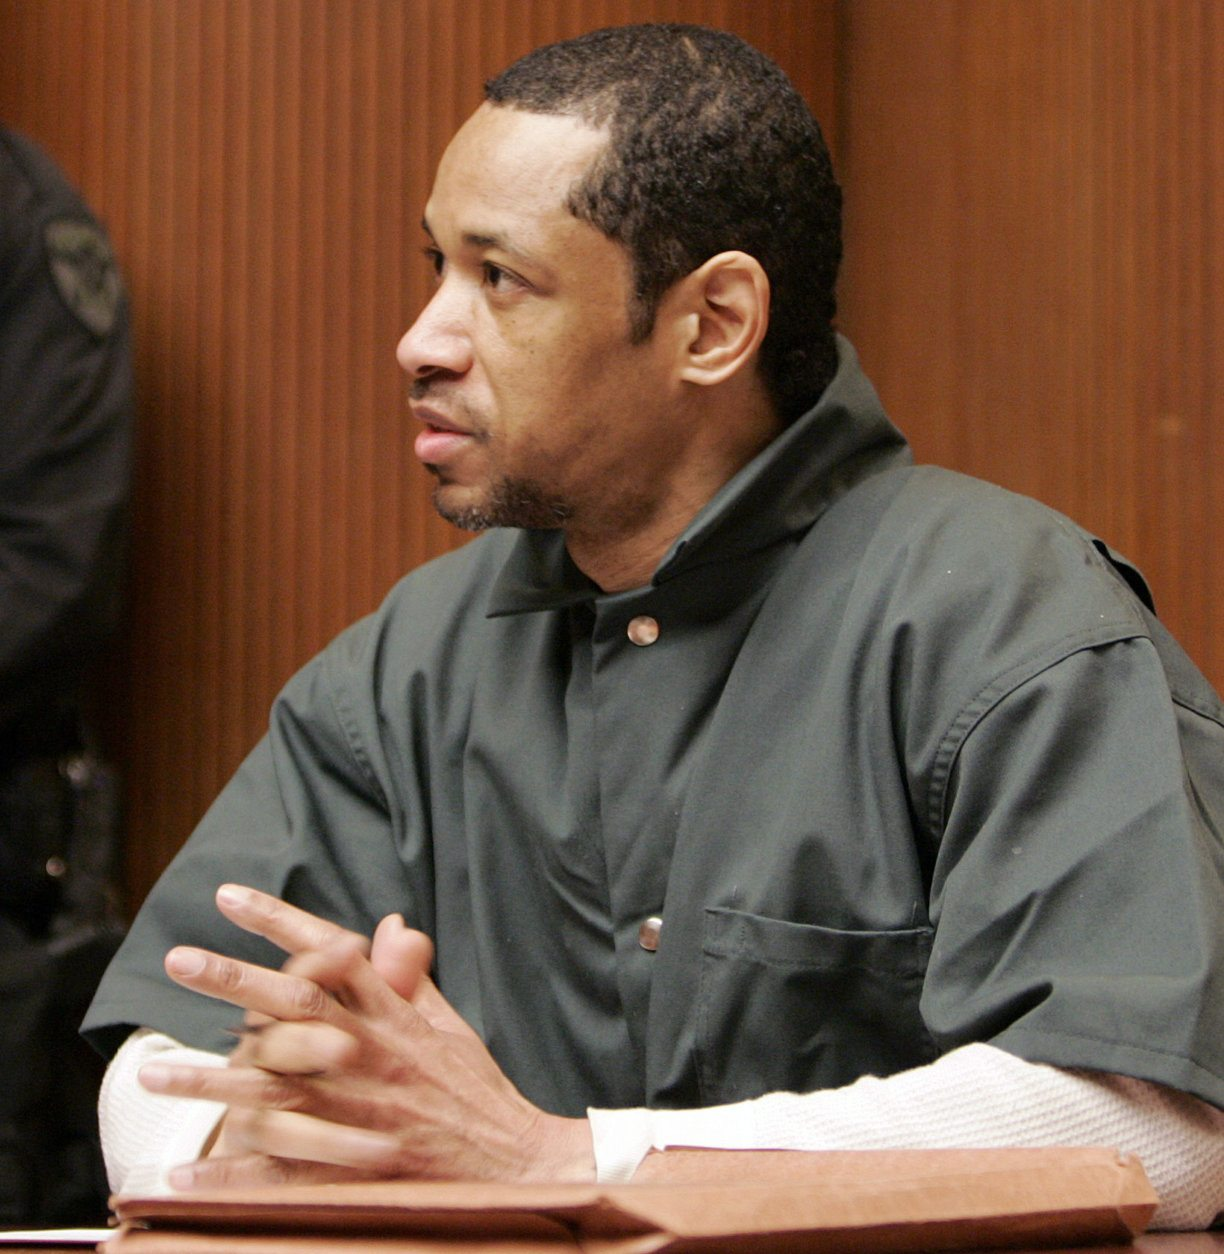 """FILE - In this Friday, April 28, 2006 file photo, convicted sniper John Allen Muhammad addresses Judge James L. Ryan during a media preview before the start of his trial in Rockville, Md. Convicted D.C. sniper Lee Boyd Malvo, aka John Lee Malvo, said in a newspaper interview published Sunday, Sept. 30, 2012, that the devastated reaction of a victim's husband made him feel like """"the worst piece of scum."""" Malvo expresses remorse in the interview with The Washington Post and urged the families of victims to try and forget about him and his partner, Muhammad, so they can move on. Tuesday, Oct. 2, marks the 10th anniversary of the beginning of the deadly spree in the Washington area carried by Malvo and Muhammad. The pair has been linked to 27 shootings across the country, including 10 fatal attacks in the Washington area. (AP Photo/Chris Gardner, Pool, File)"""